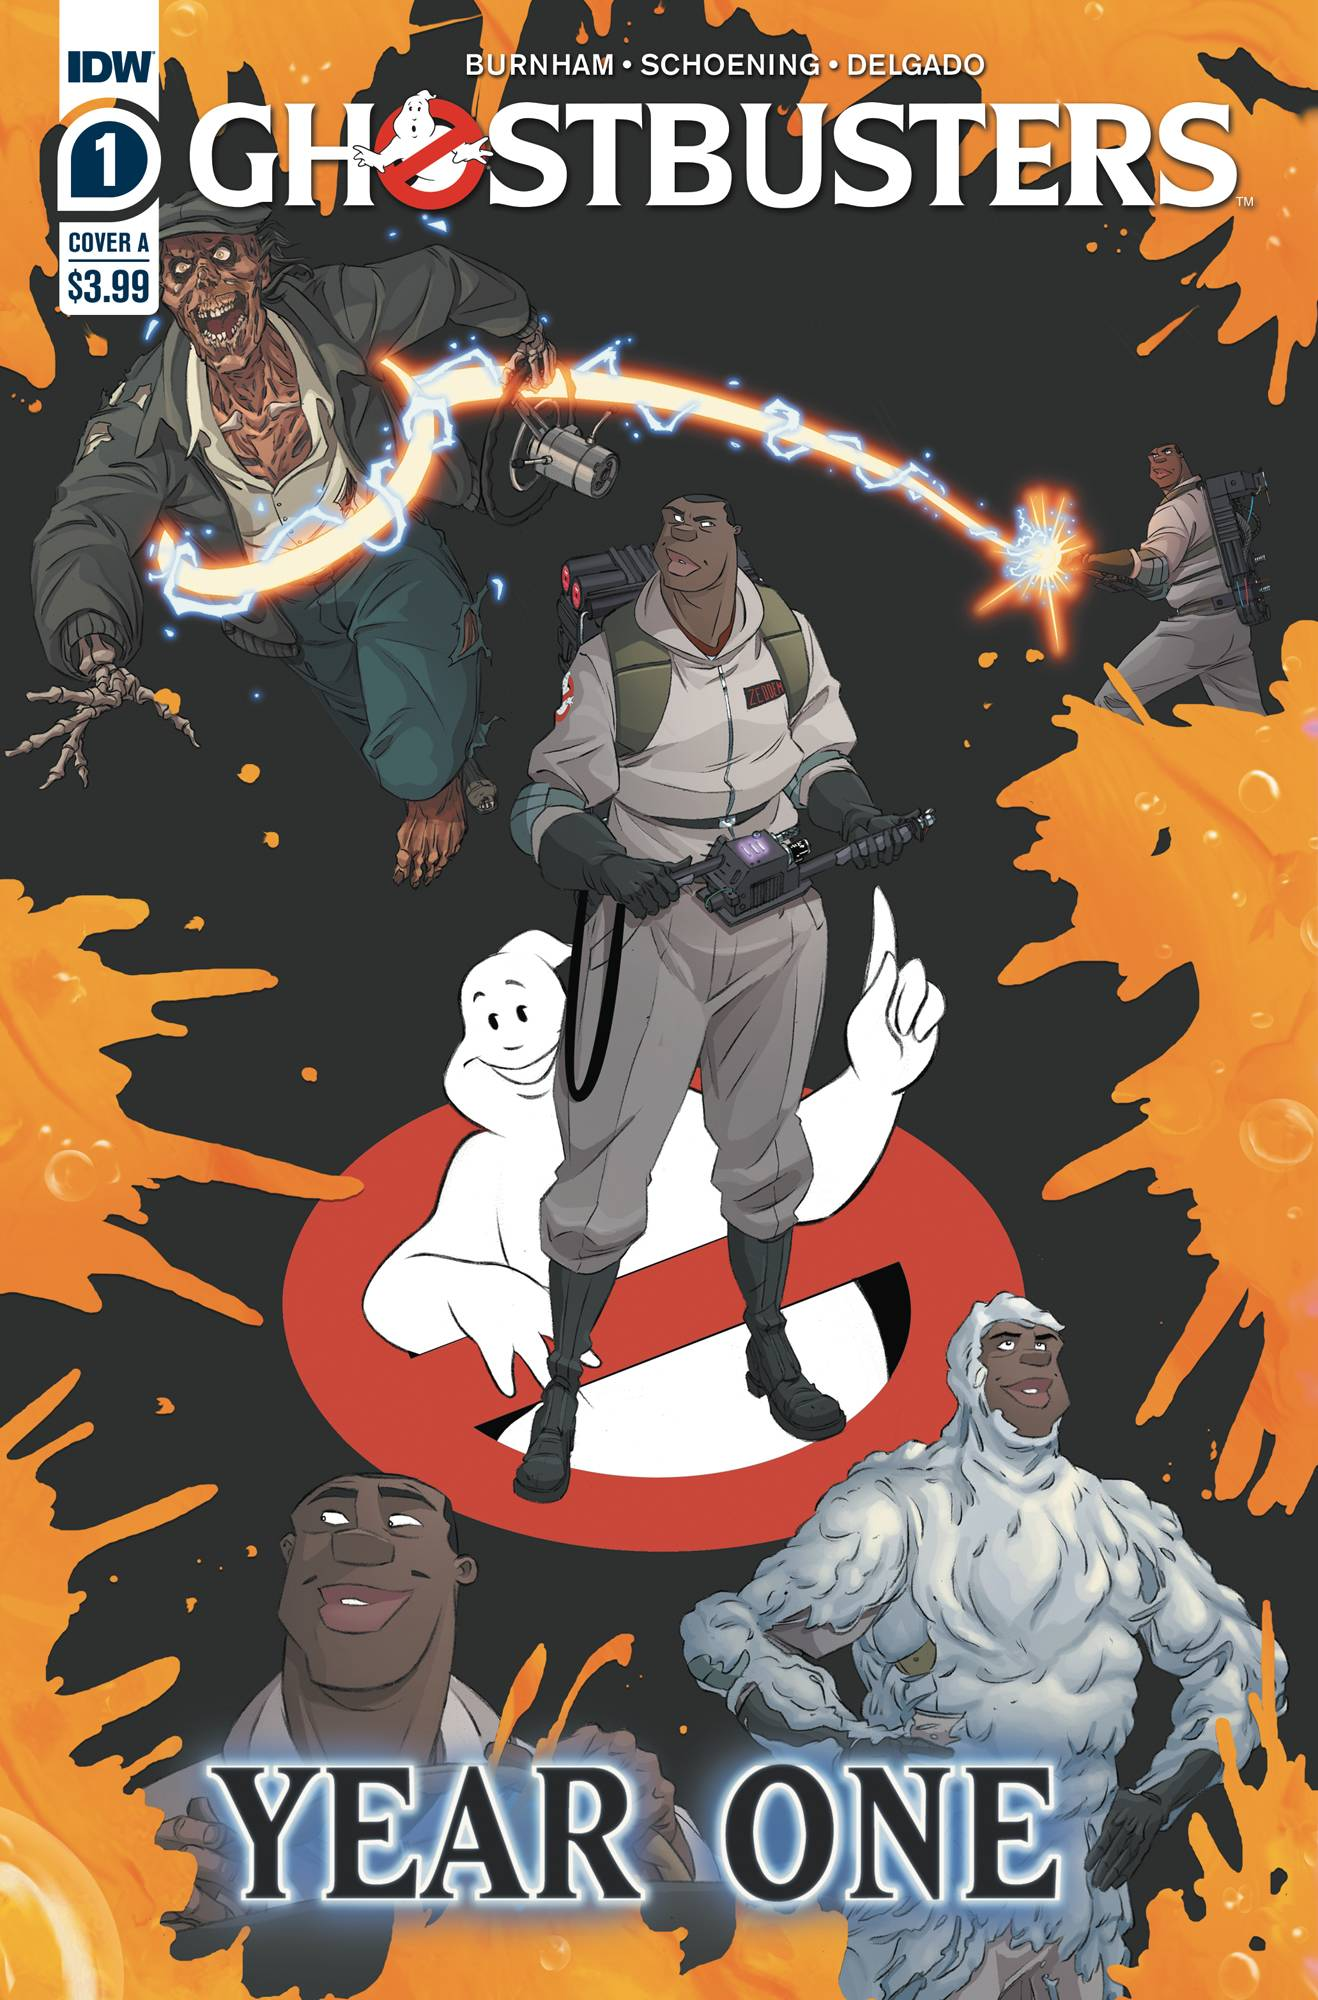 GHOSTBUSTERS YEAR ONE #1 (OF 4) CVR A SHOENING